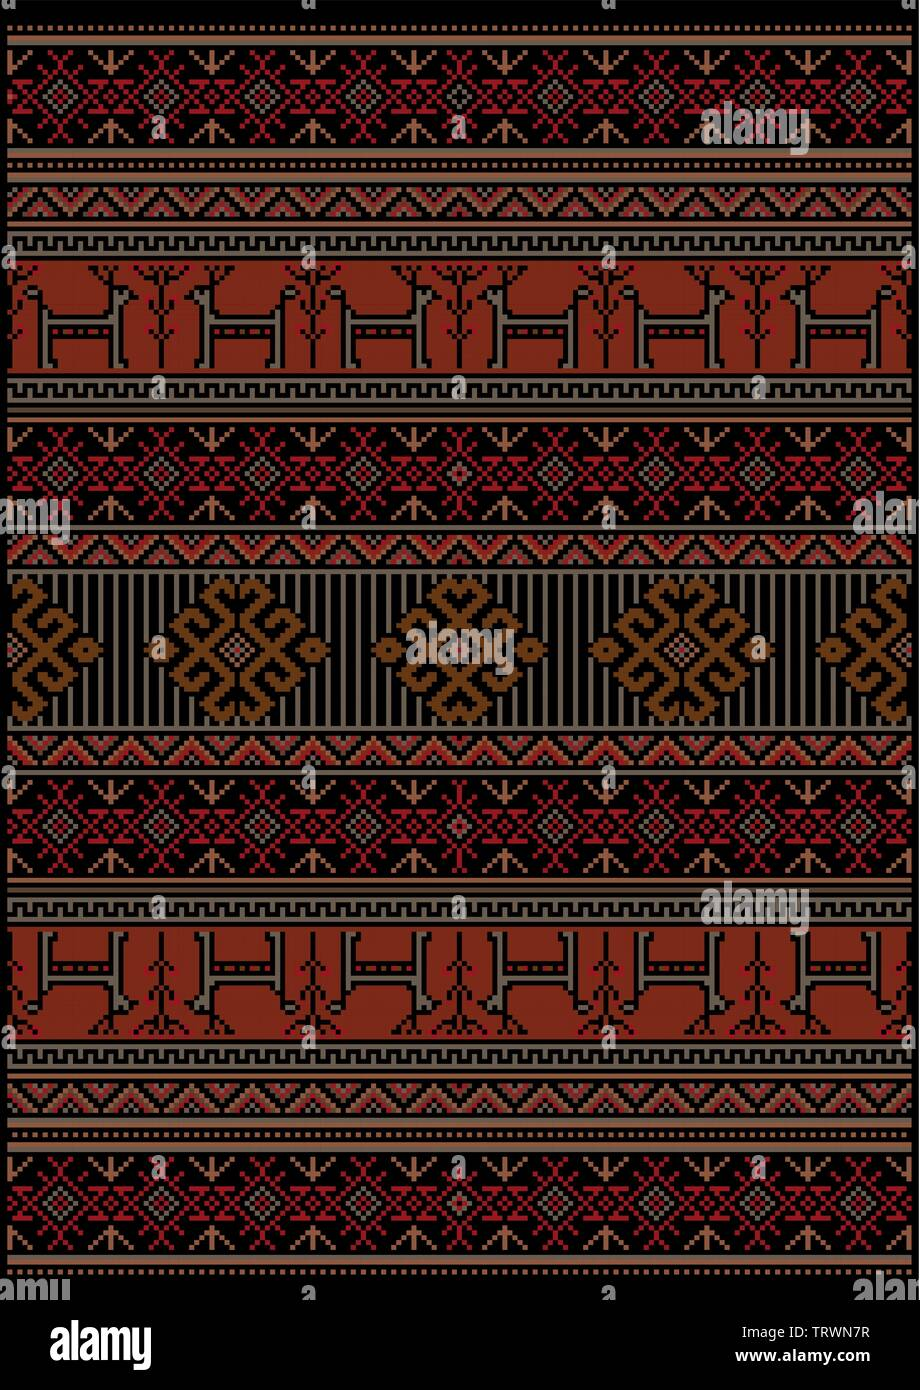 Original luxury vintage carpet with ethnic pattern in red and black colors with gray deer and flowers - Stock Image